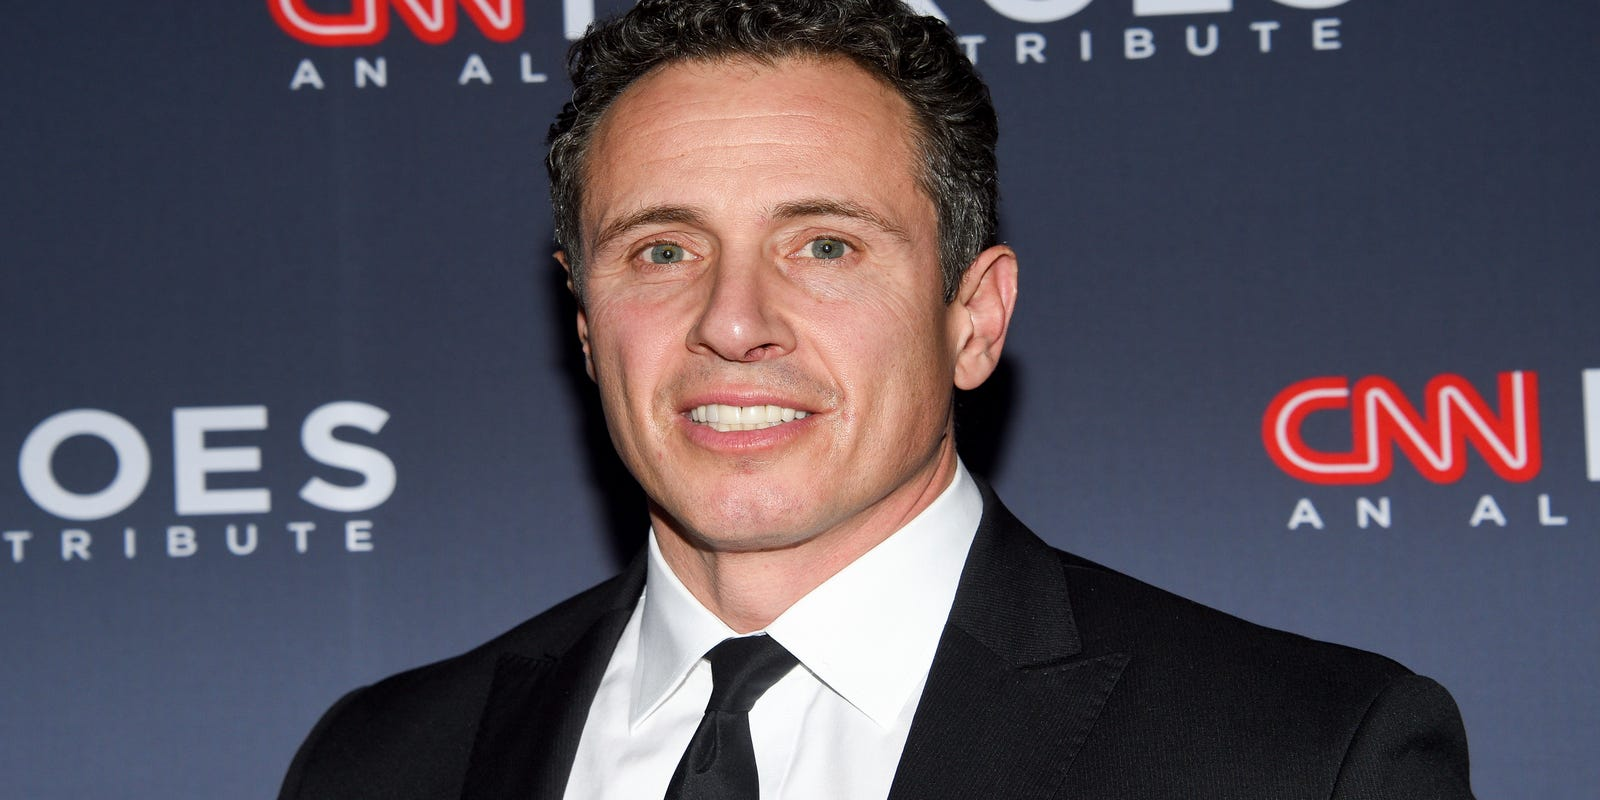 Coronavirus: Gov. Andrew Cuomo gives emotional update on Chris Cuomo